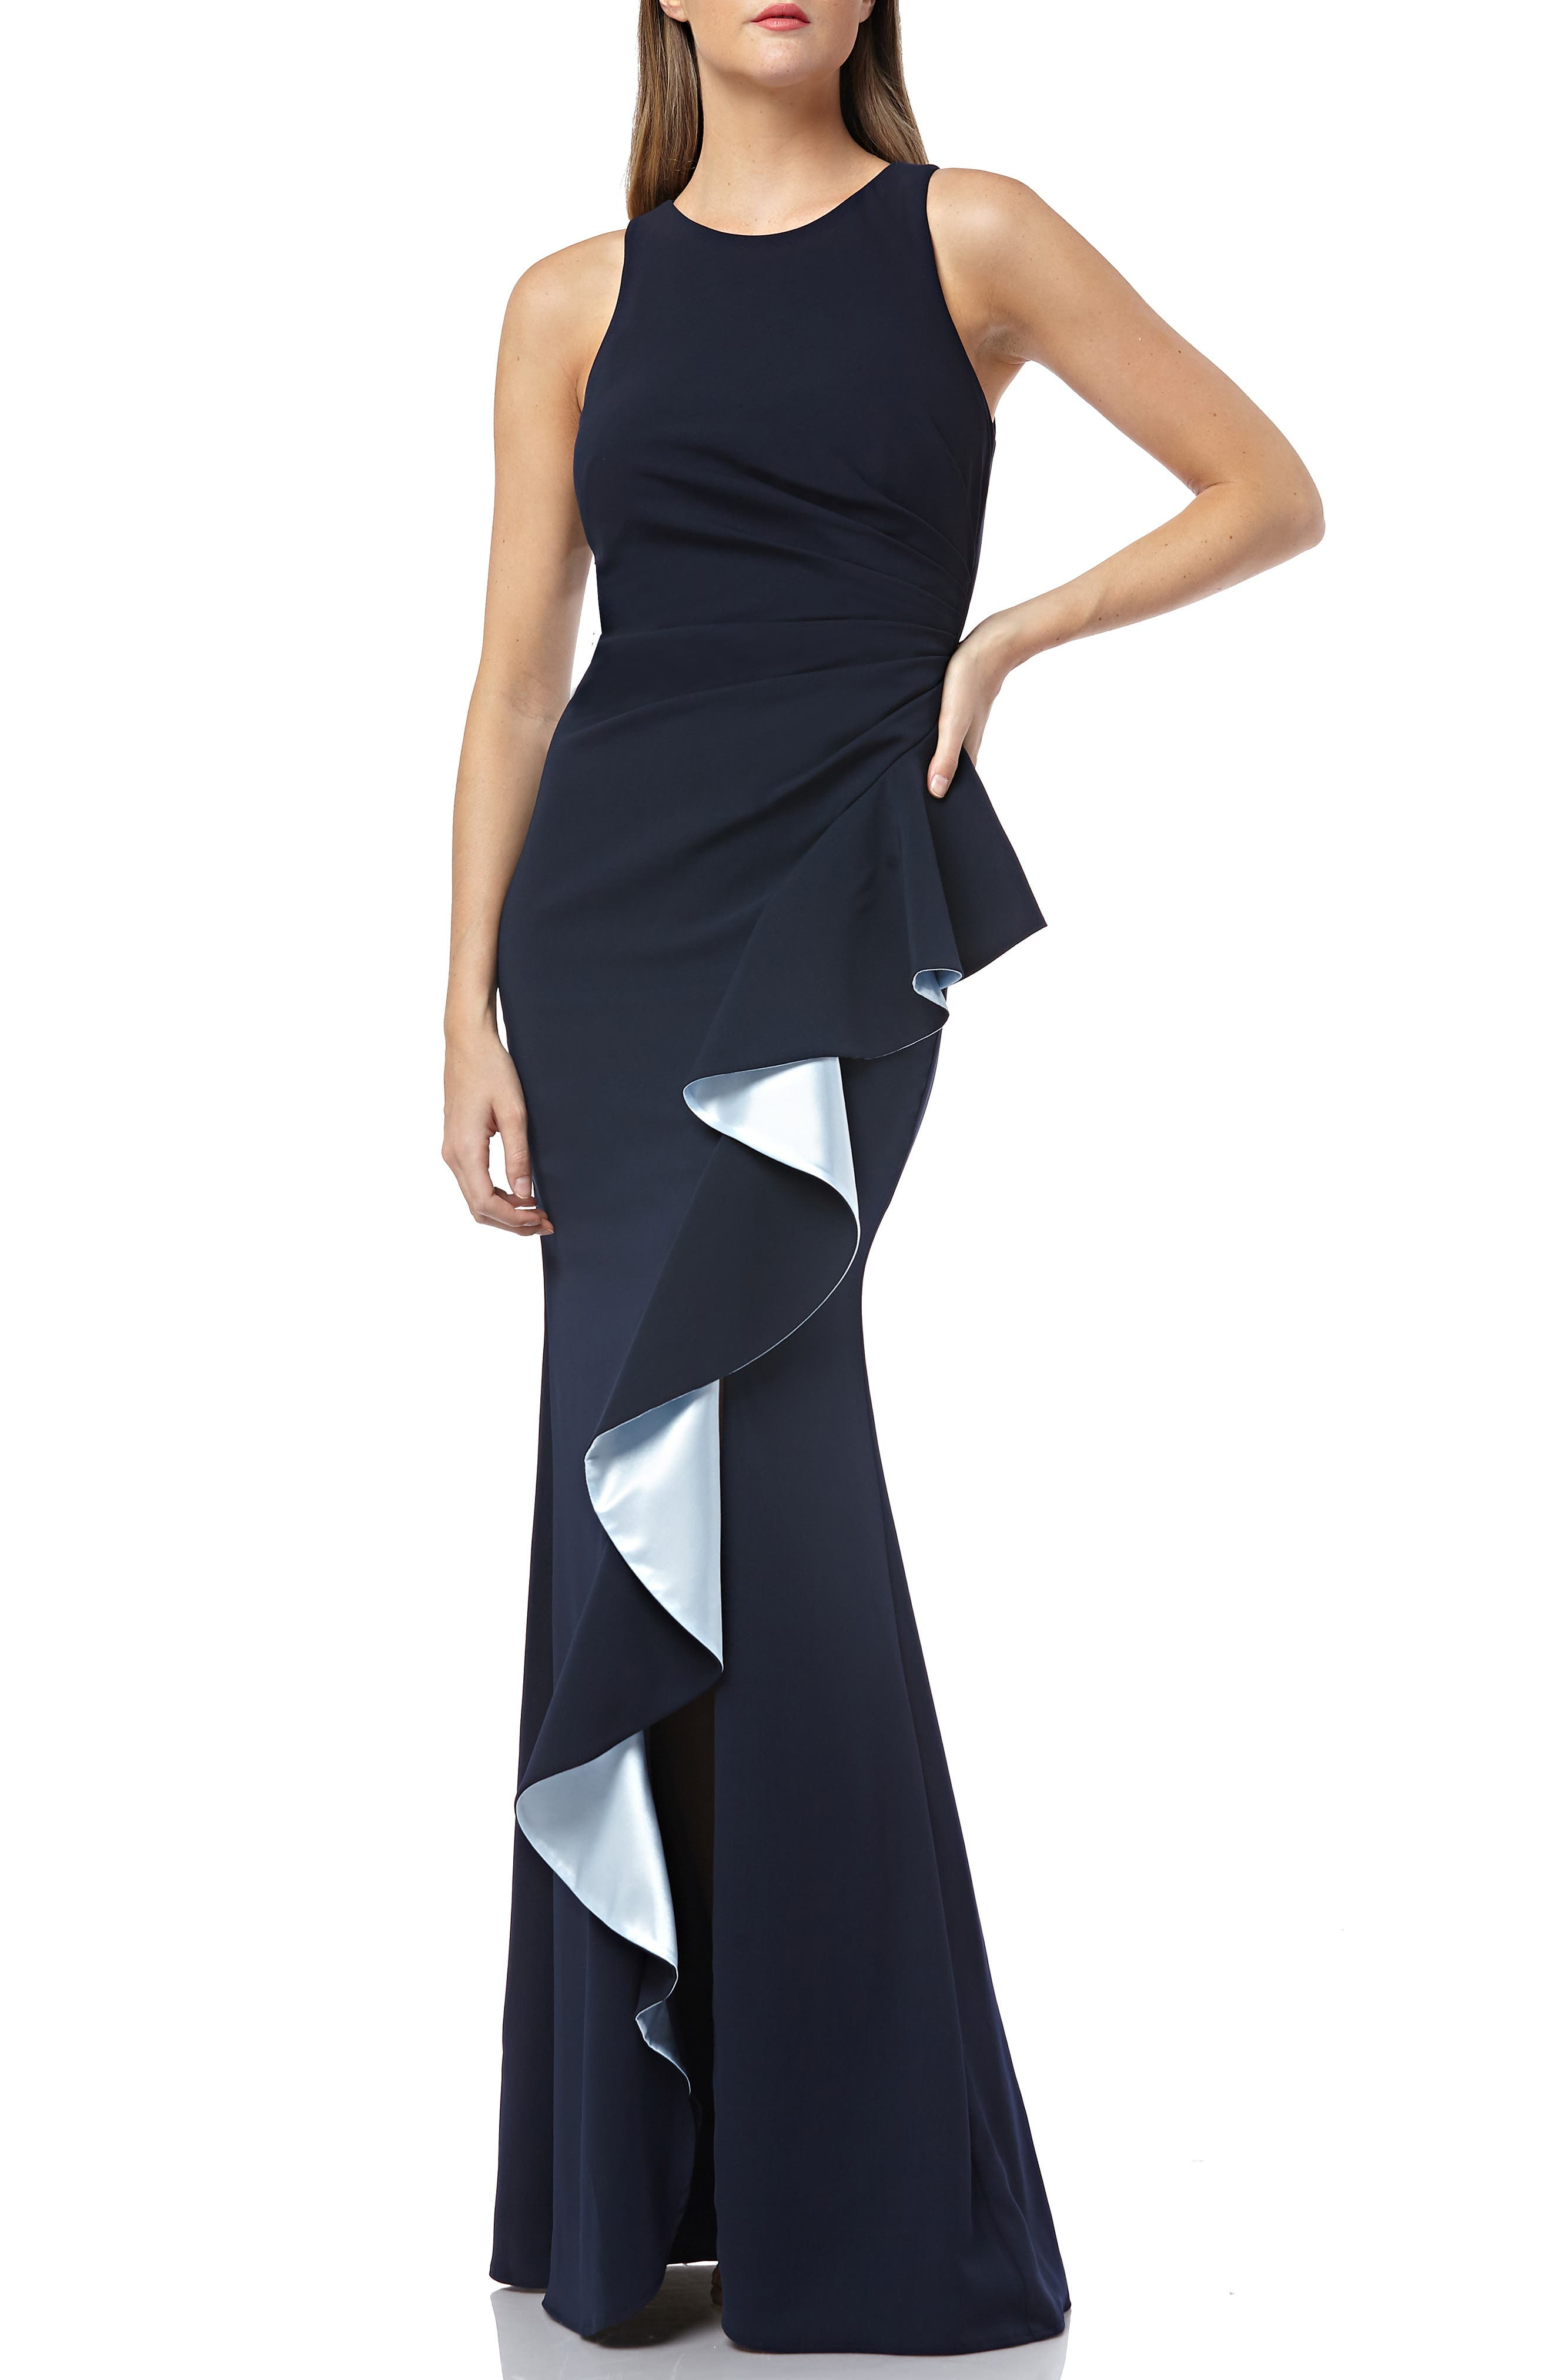 CARMEN MARC VALVO INFUSION, Carmen Marc Valvo Couture Infusion Ruffle Gown, Main thumbnail 1, color, NAVY/ ICE BLUE